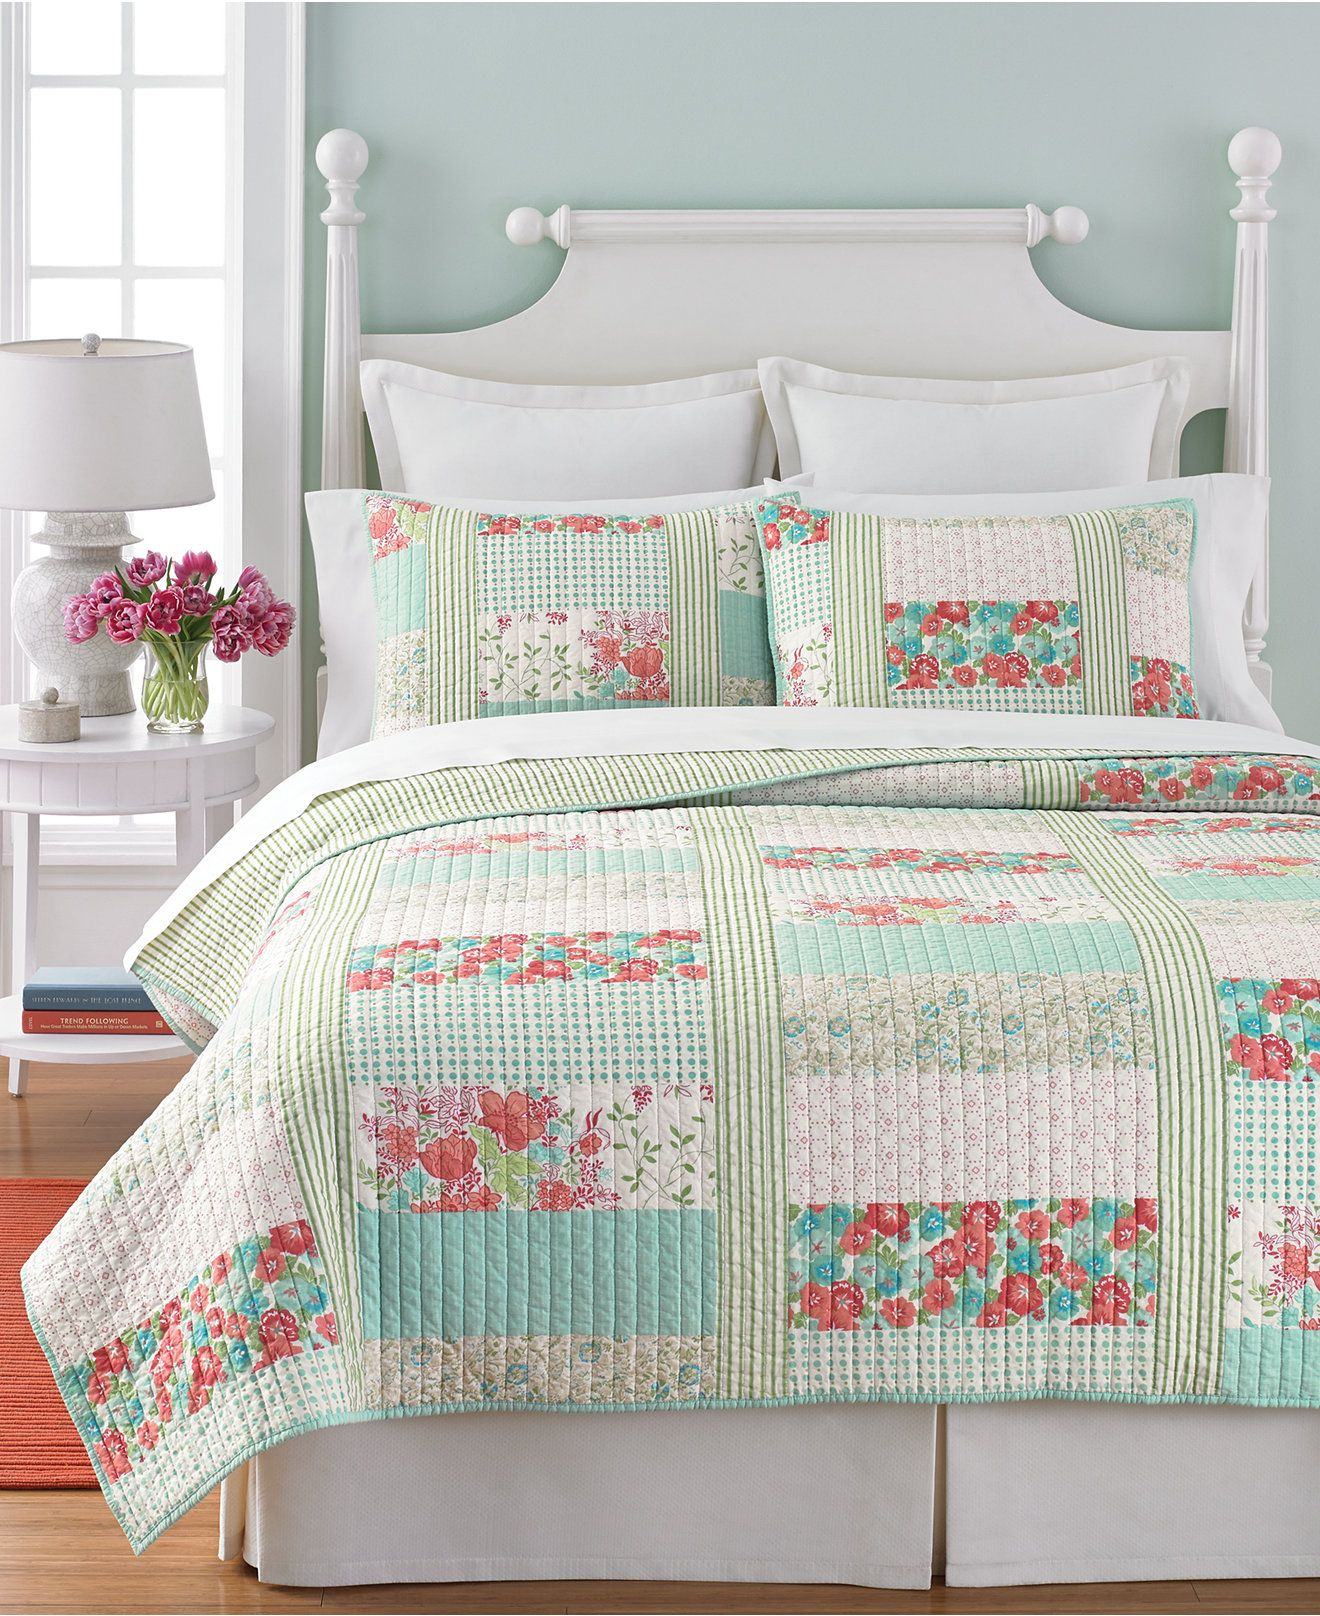 Martha Stewart Collection Aqua & Coral Patchwork Posey Full Queen